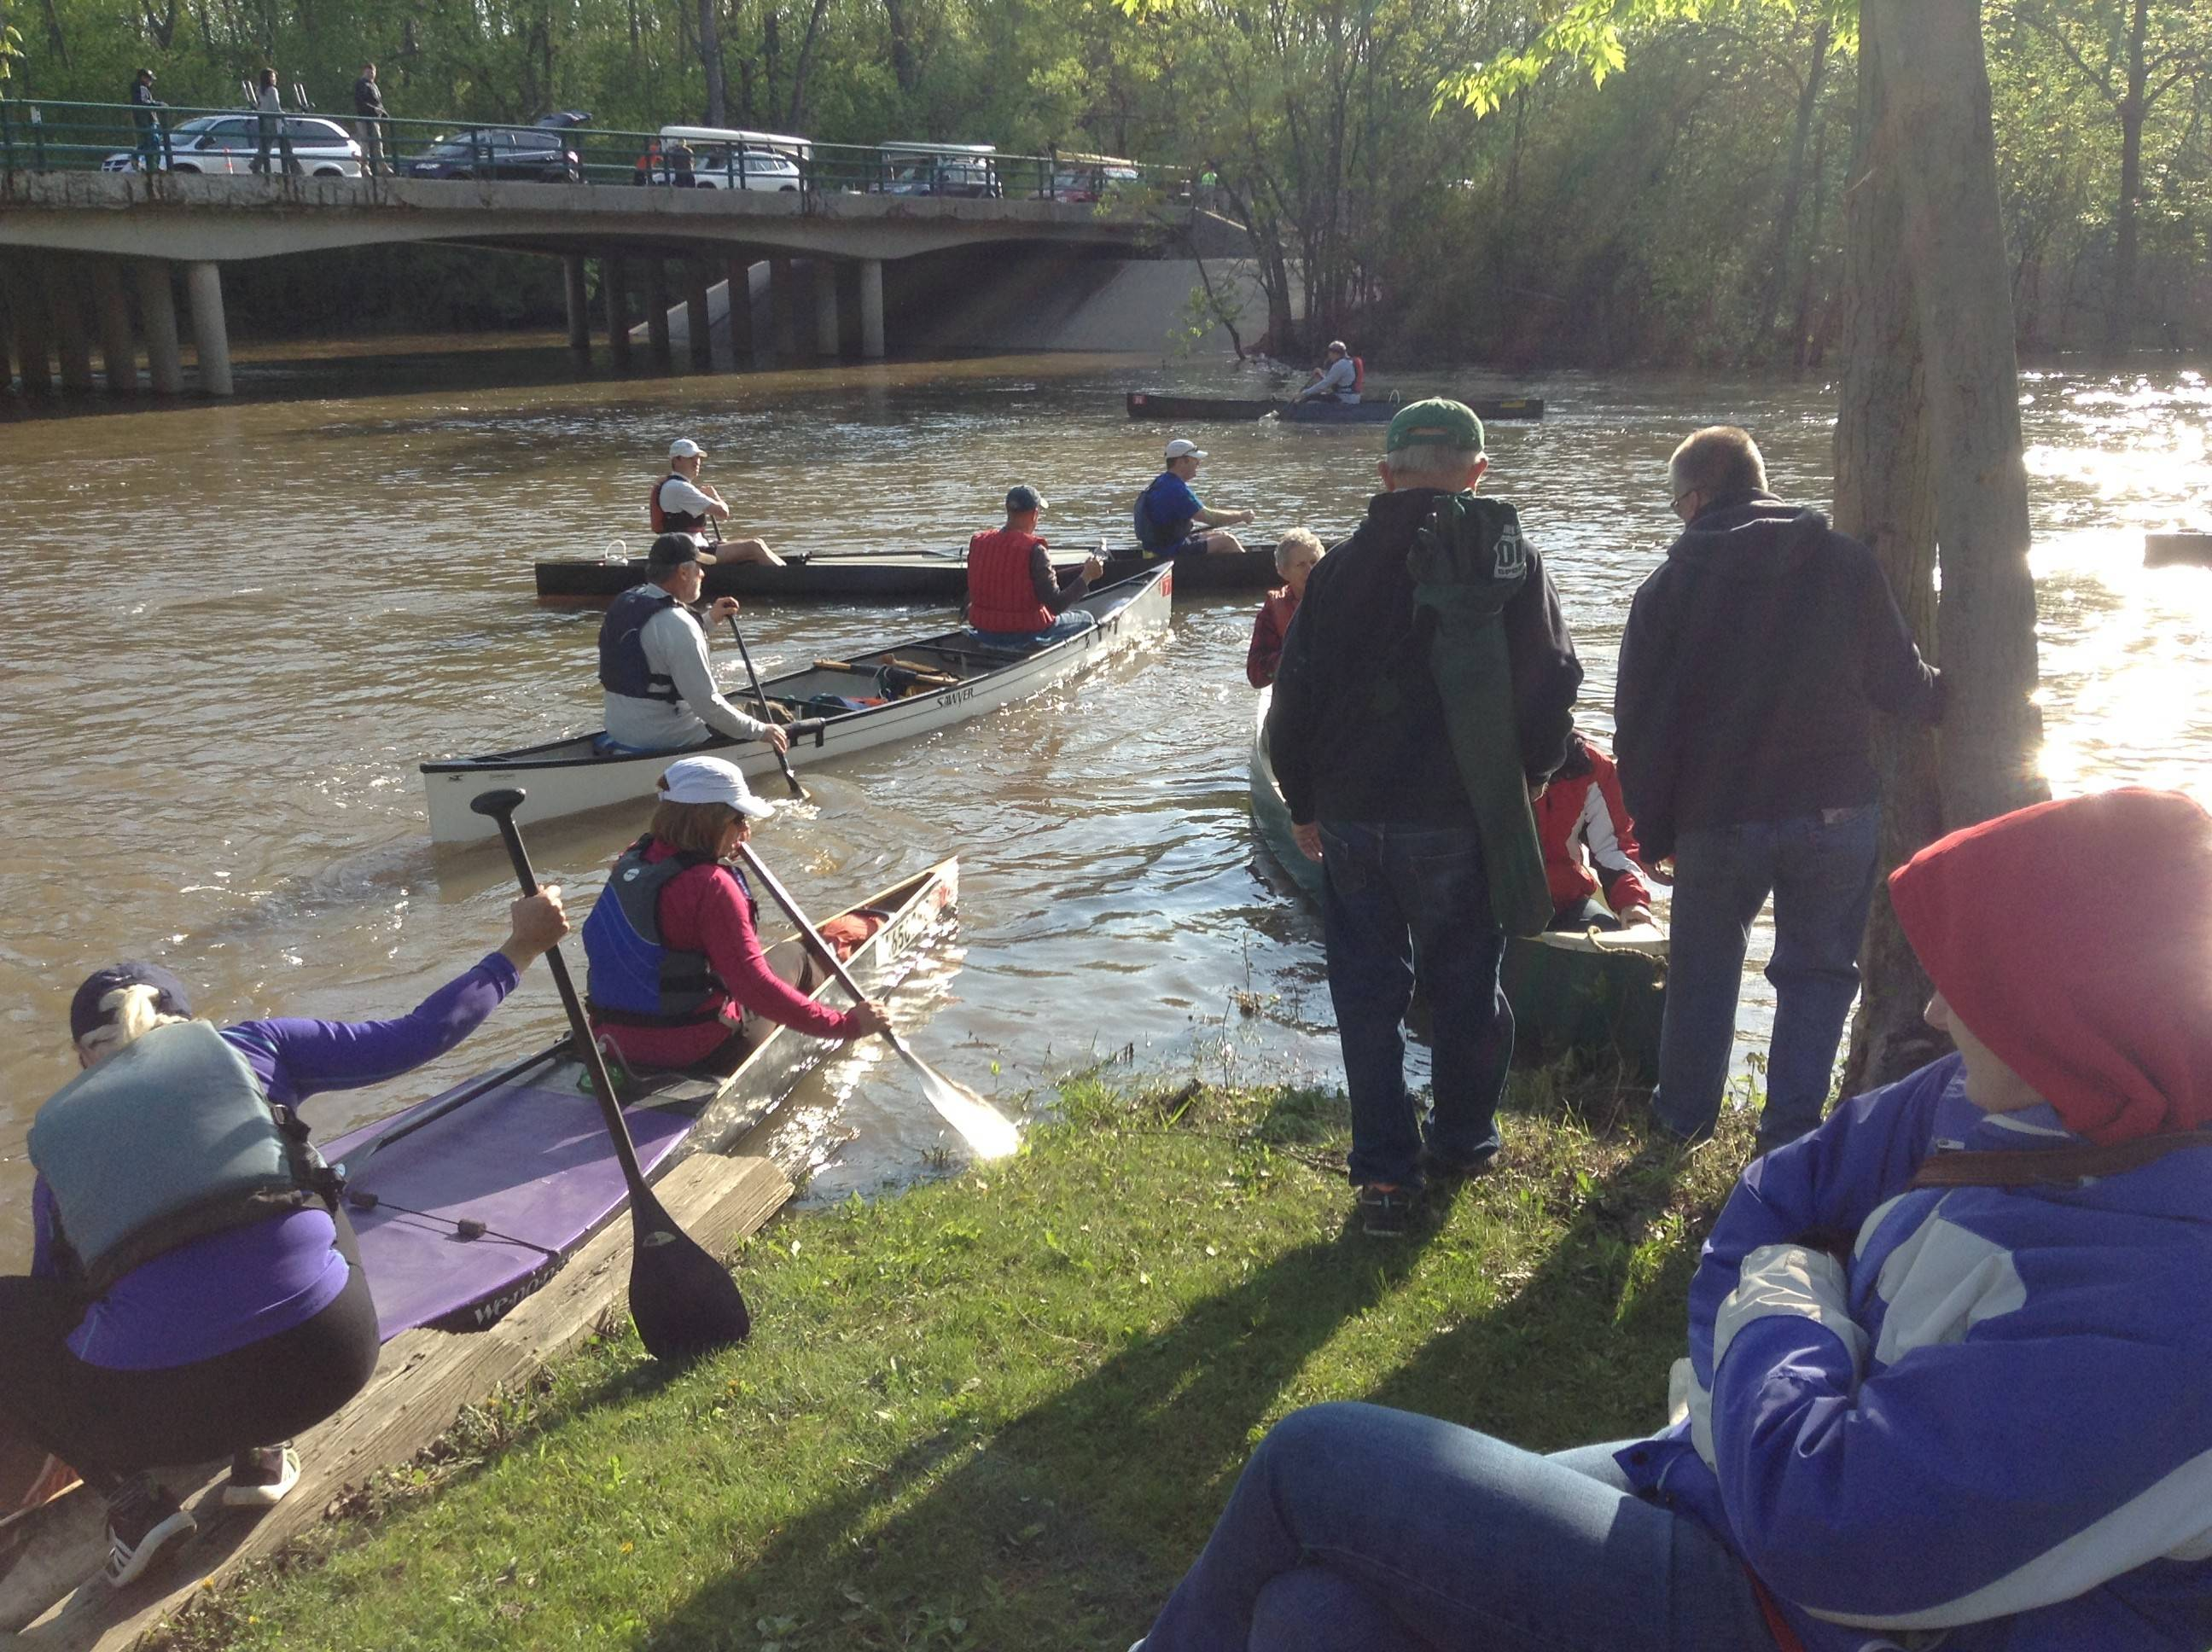 Racers paddle toward the starting line at the Des Plaines River Canoe and Kayak Marathon in Libertyville on Sunday. Organizers nearly canceled Sunday's race because of high water and the swift current of the river, but decided to allow it to go on as scheduled after warning participants of the conditions.